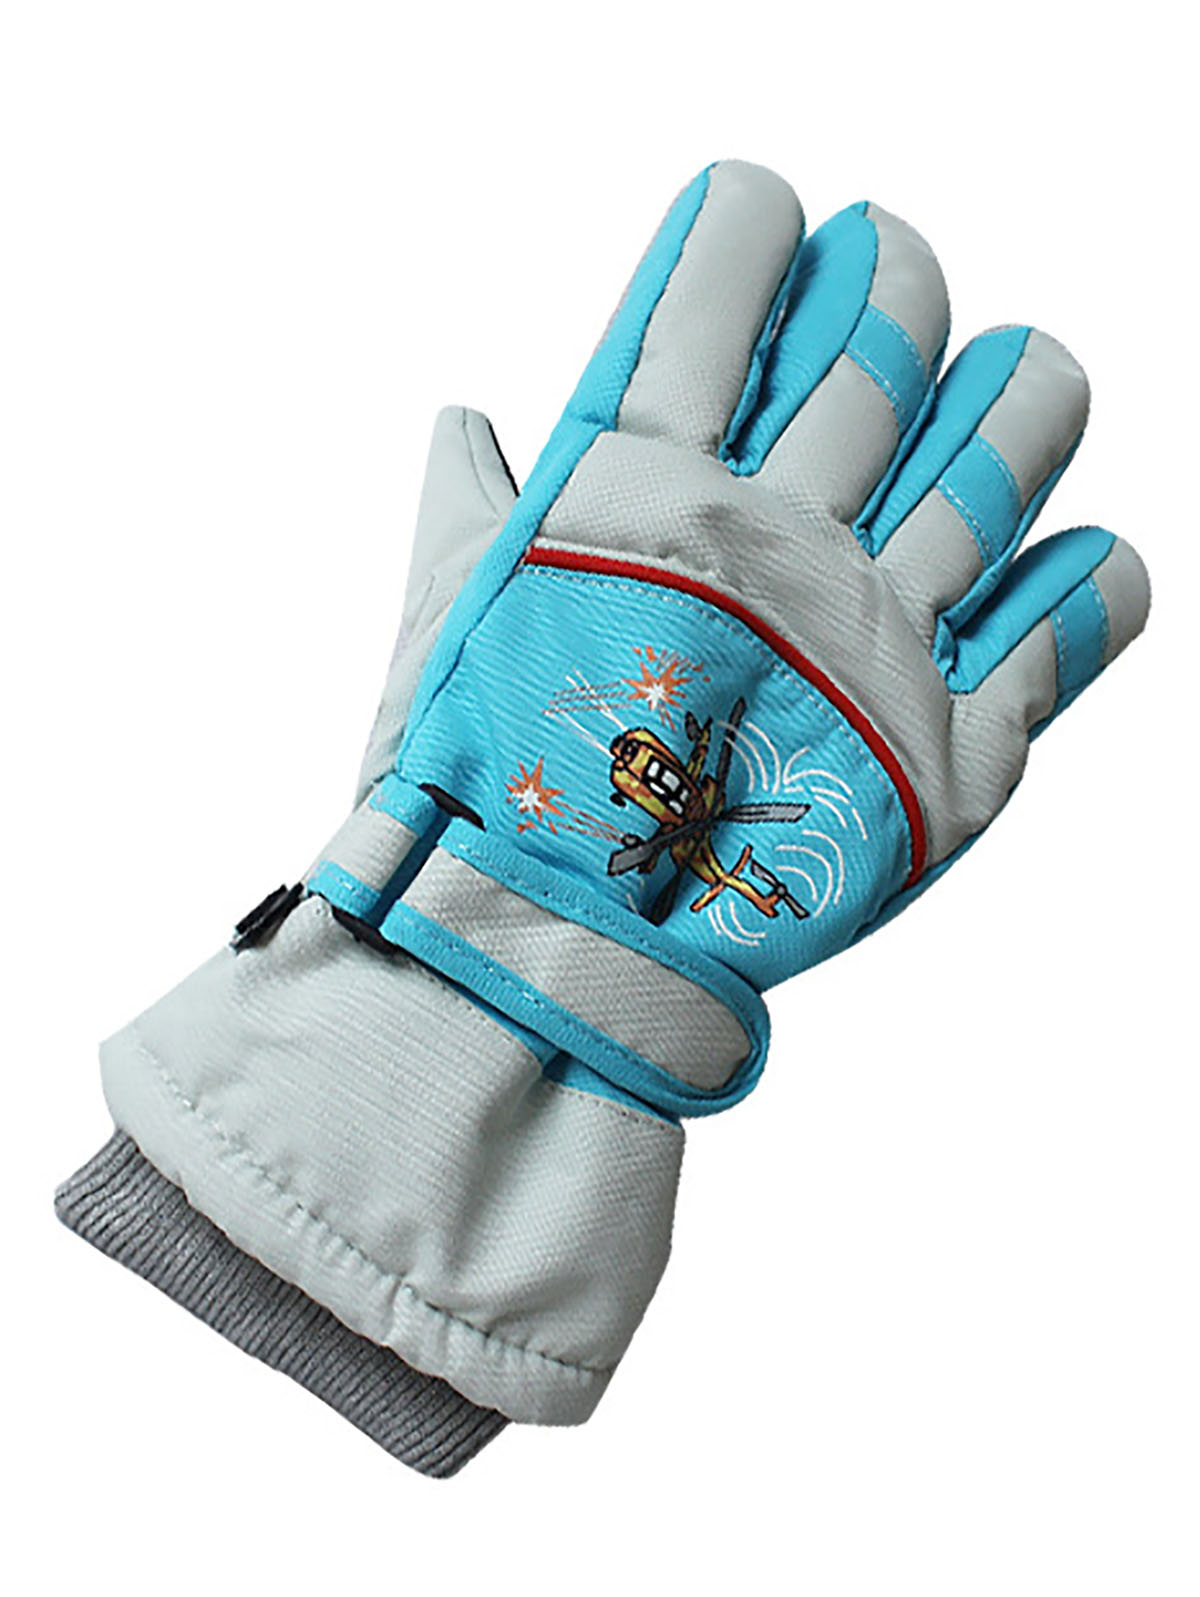 Outdoor ski warm and cold gloves for children aged 4-10